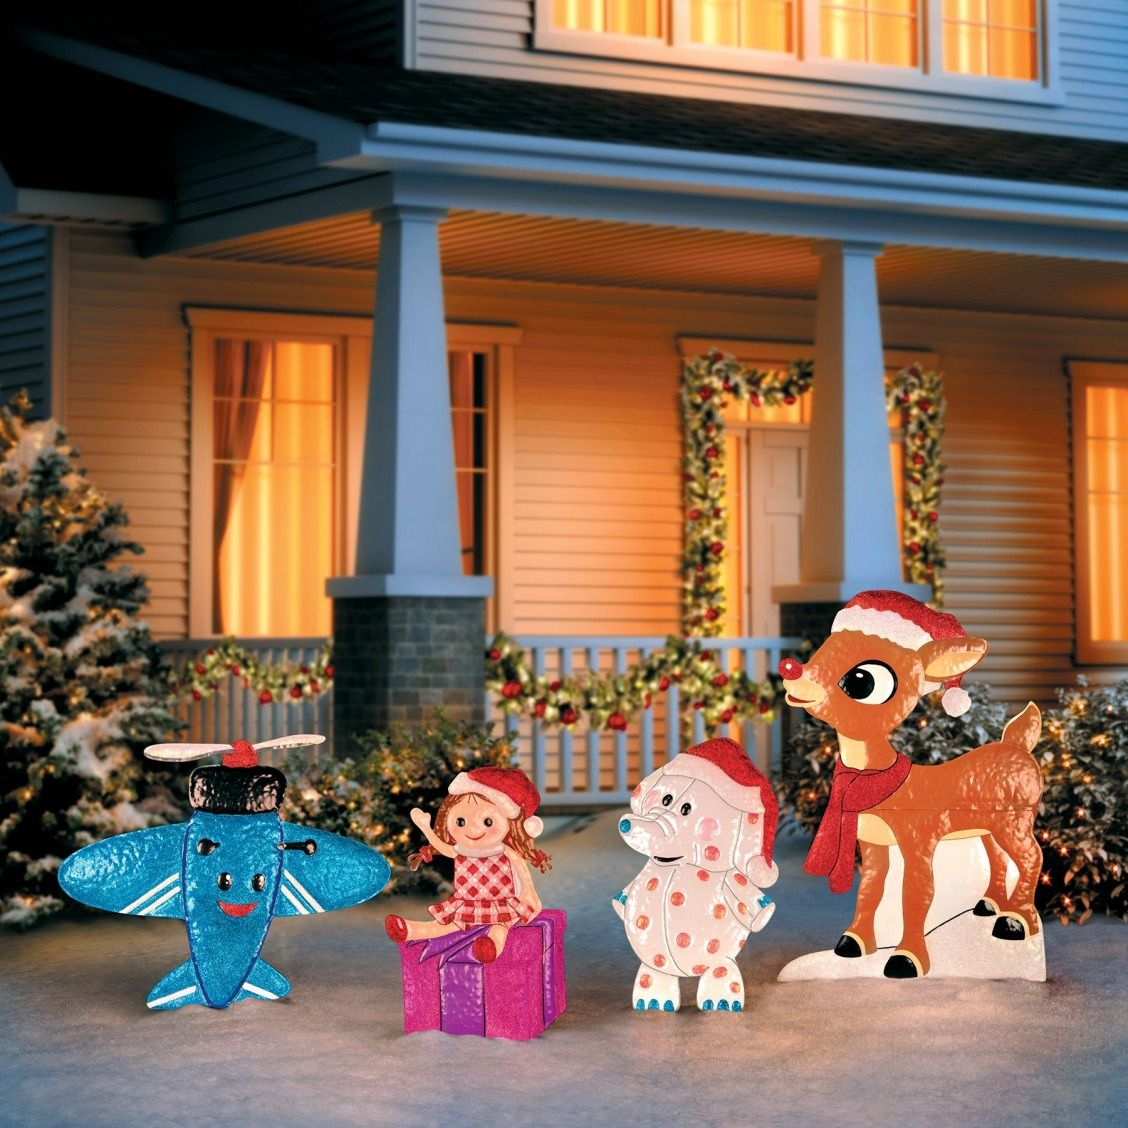 Rudolph And His Misfit Friends Will Be Ready And Waiting For Santa